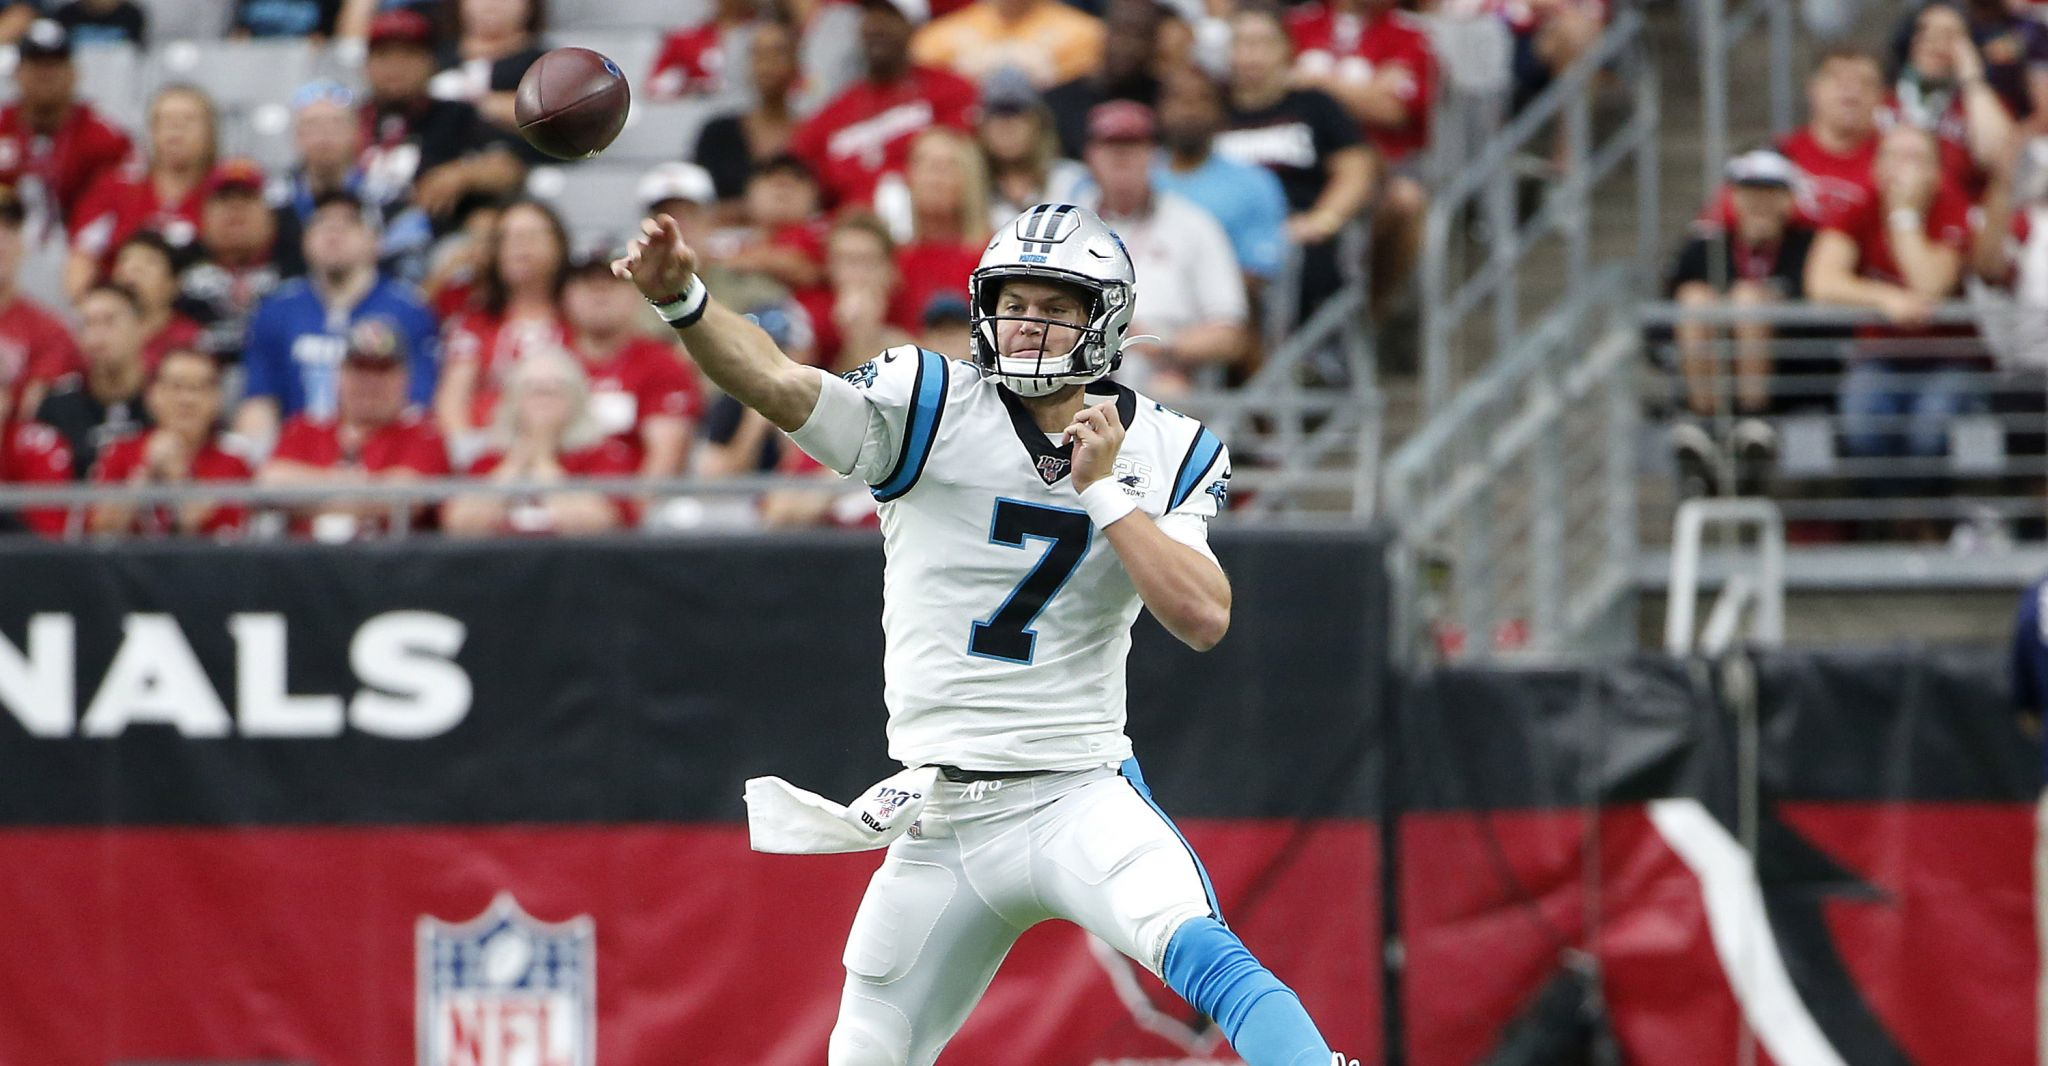 Texans: Looking ahead to Panthers